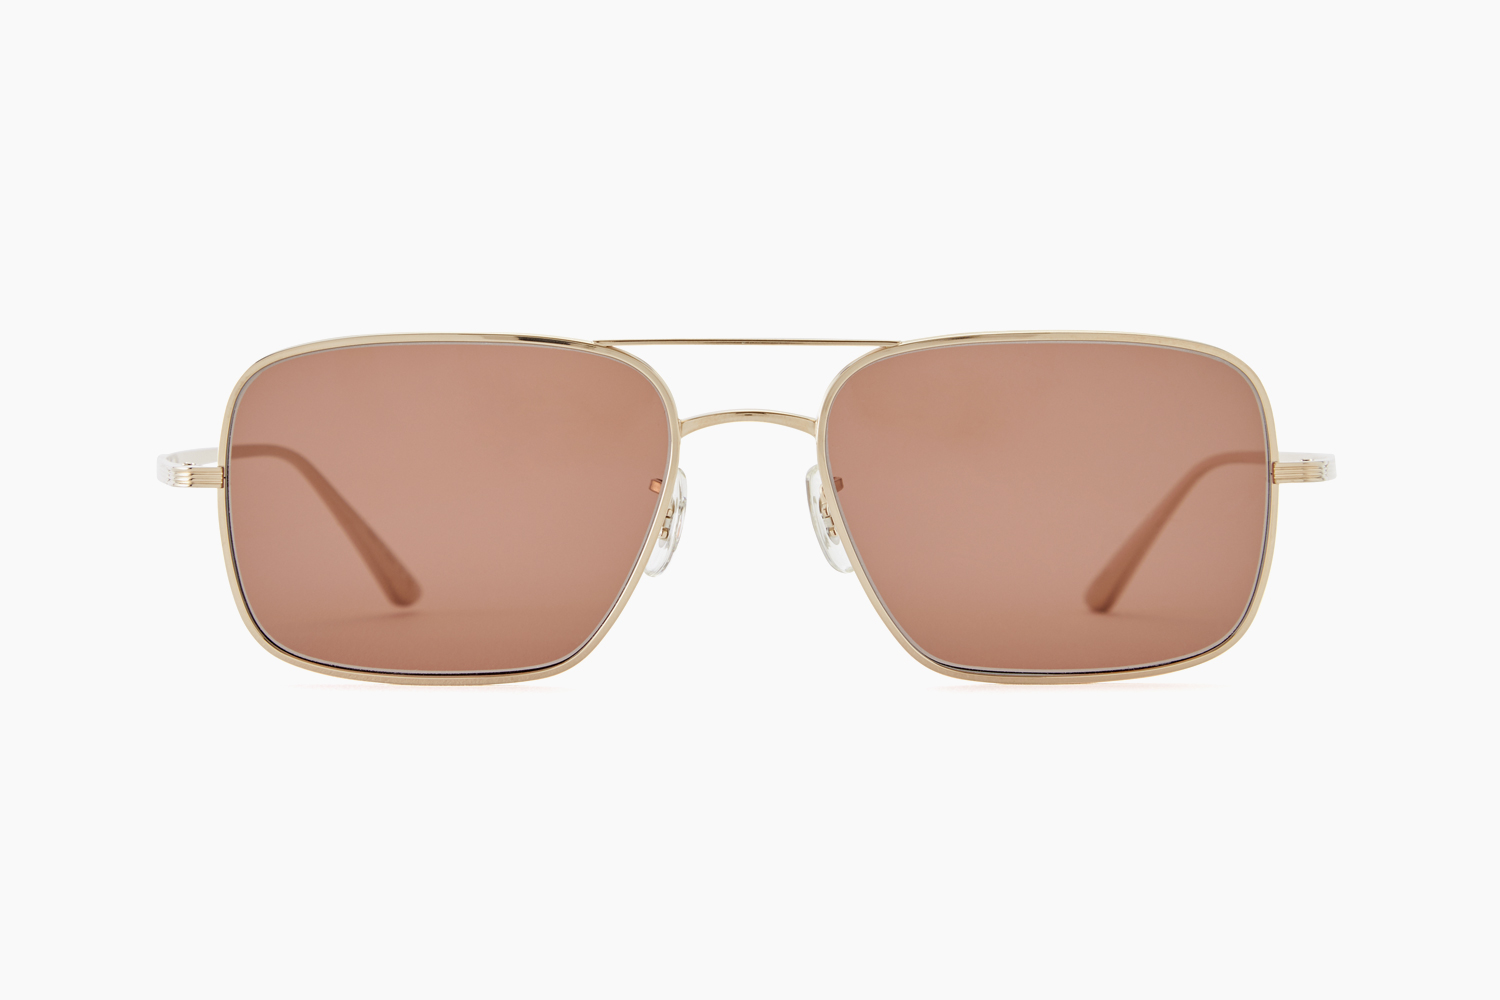 OLIVER PEOPLES THE ROWVICTORY LA - 5292C5 OLIVER PEOPLES